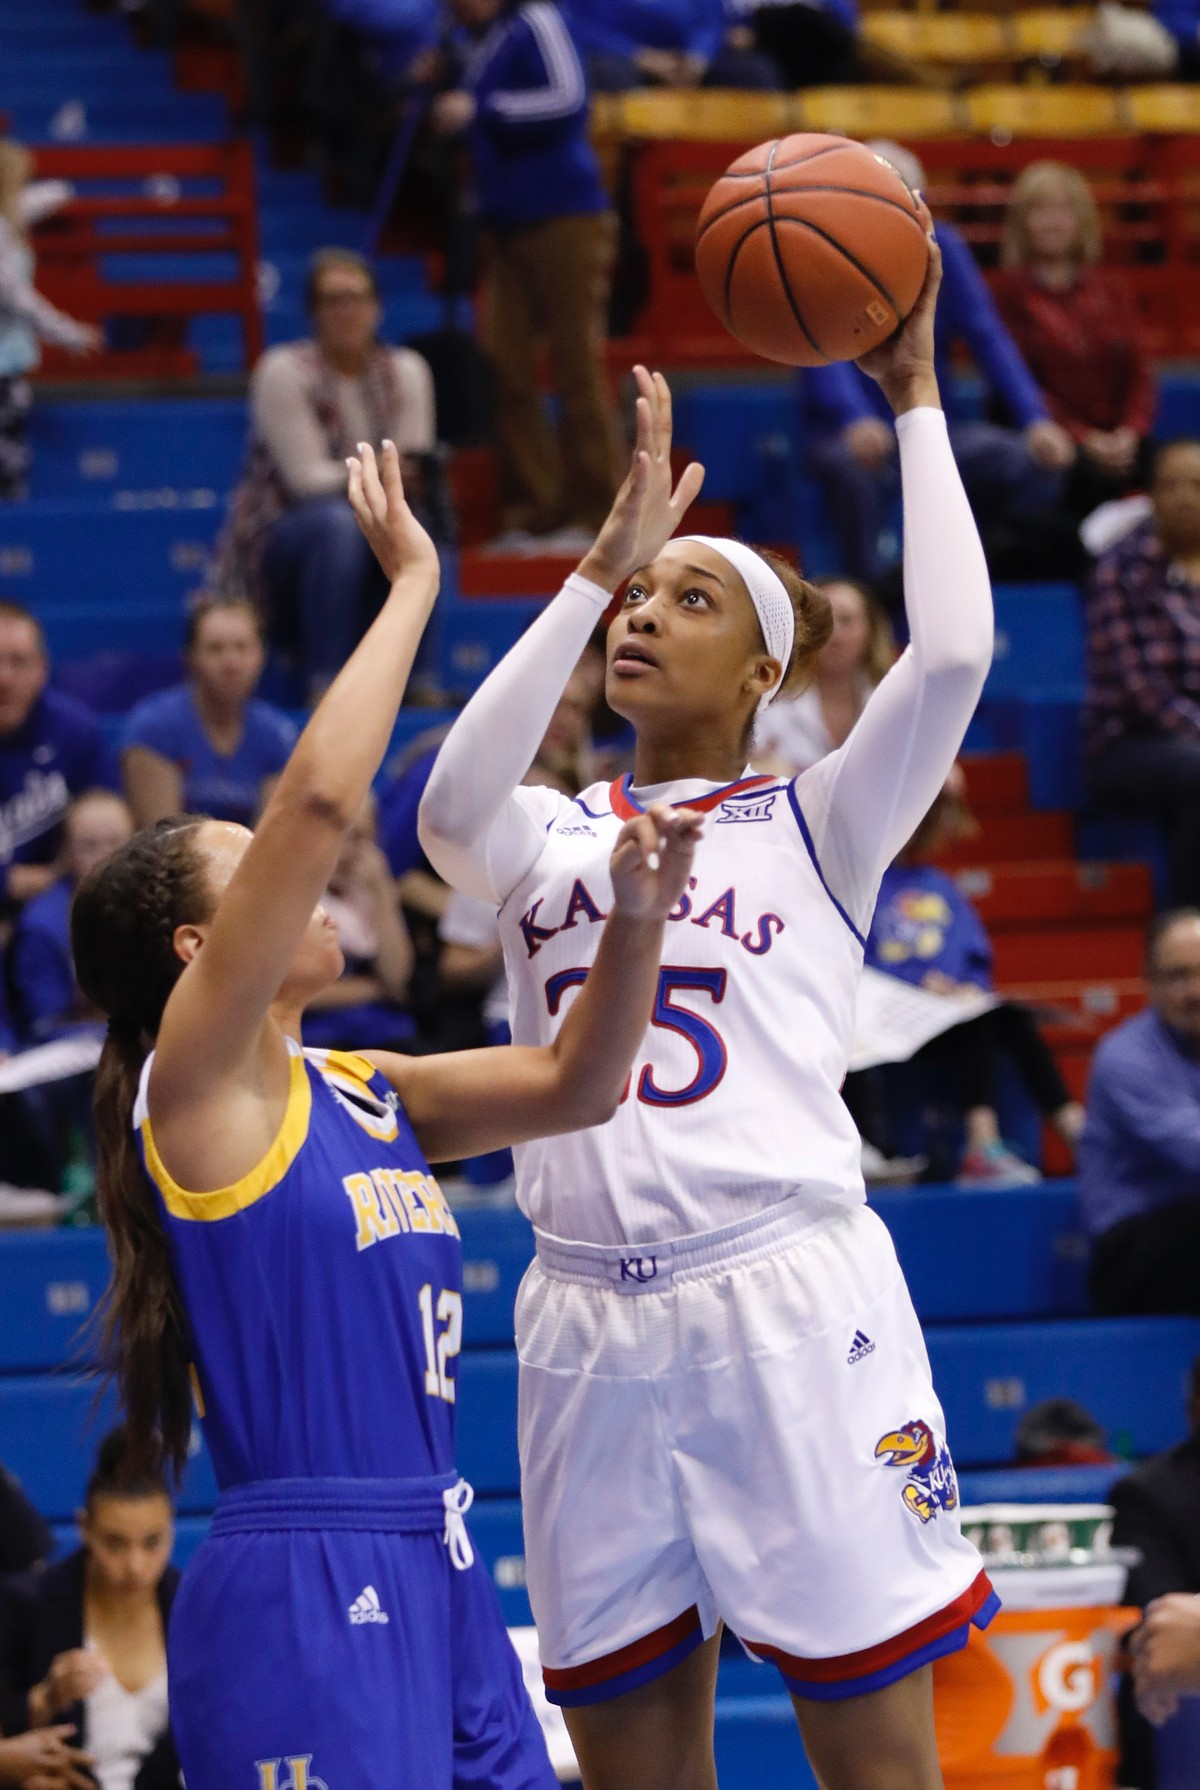 KU women's basketball vs. UC Riverside | KUsports.com